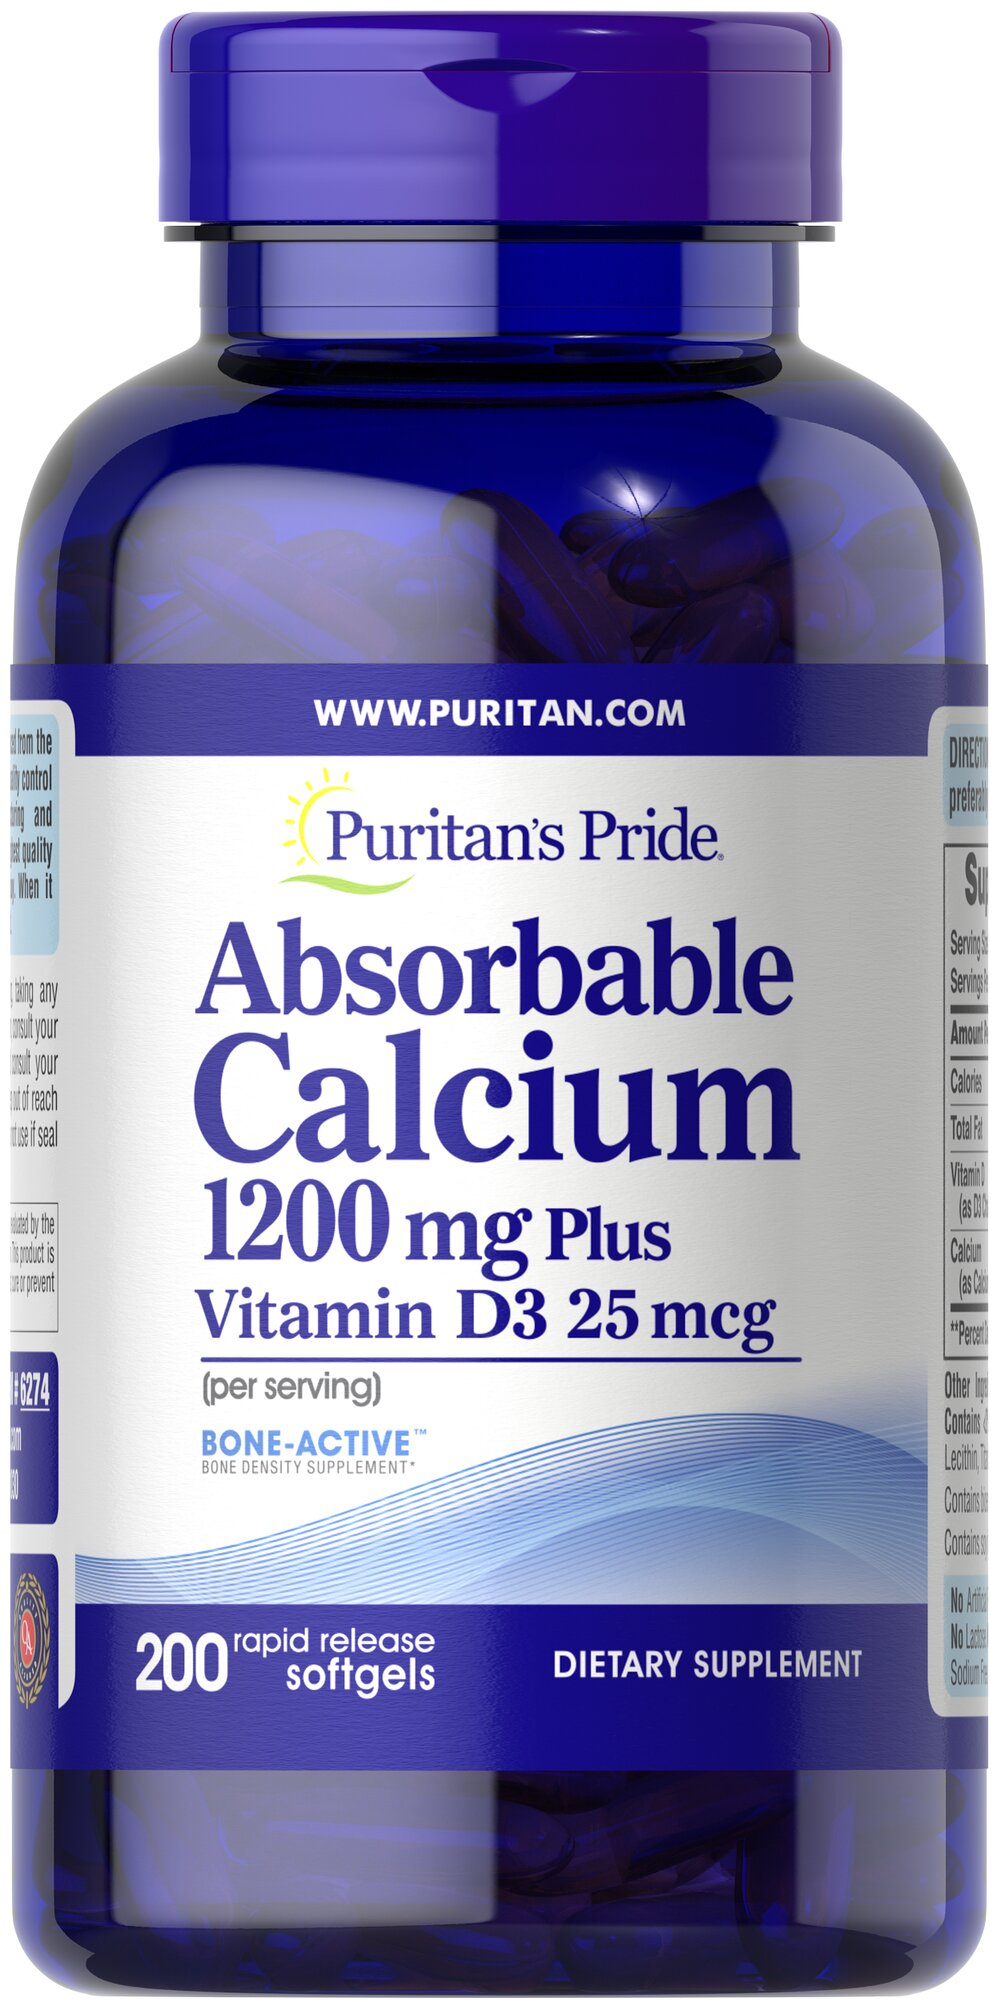 Absorbable Calcium 1200 mg with Vitamin D 1000 IU <p>Finally, a liquid Calcium supplement in a convenient softgel form! Less than 30 minutes after ingestion, each rapid dissolving softgel releases pre-dissolved liquid Calcium. Plus, each softgel is fortified with Vitamin D. Calcium and Vitamin D help maintain healthy bones in adults.**</p> 200 Softgels 1200 mg/1000 IU $21.59